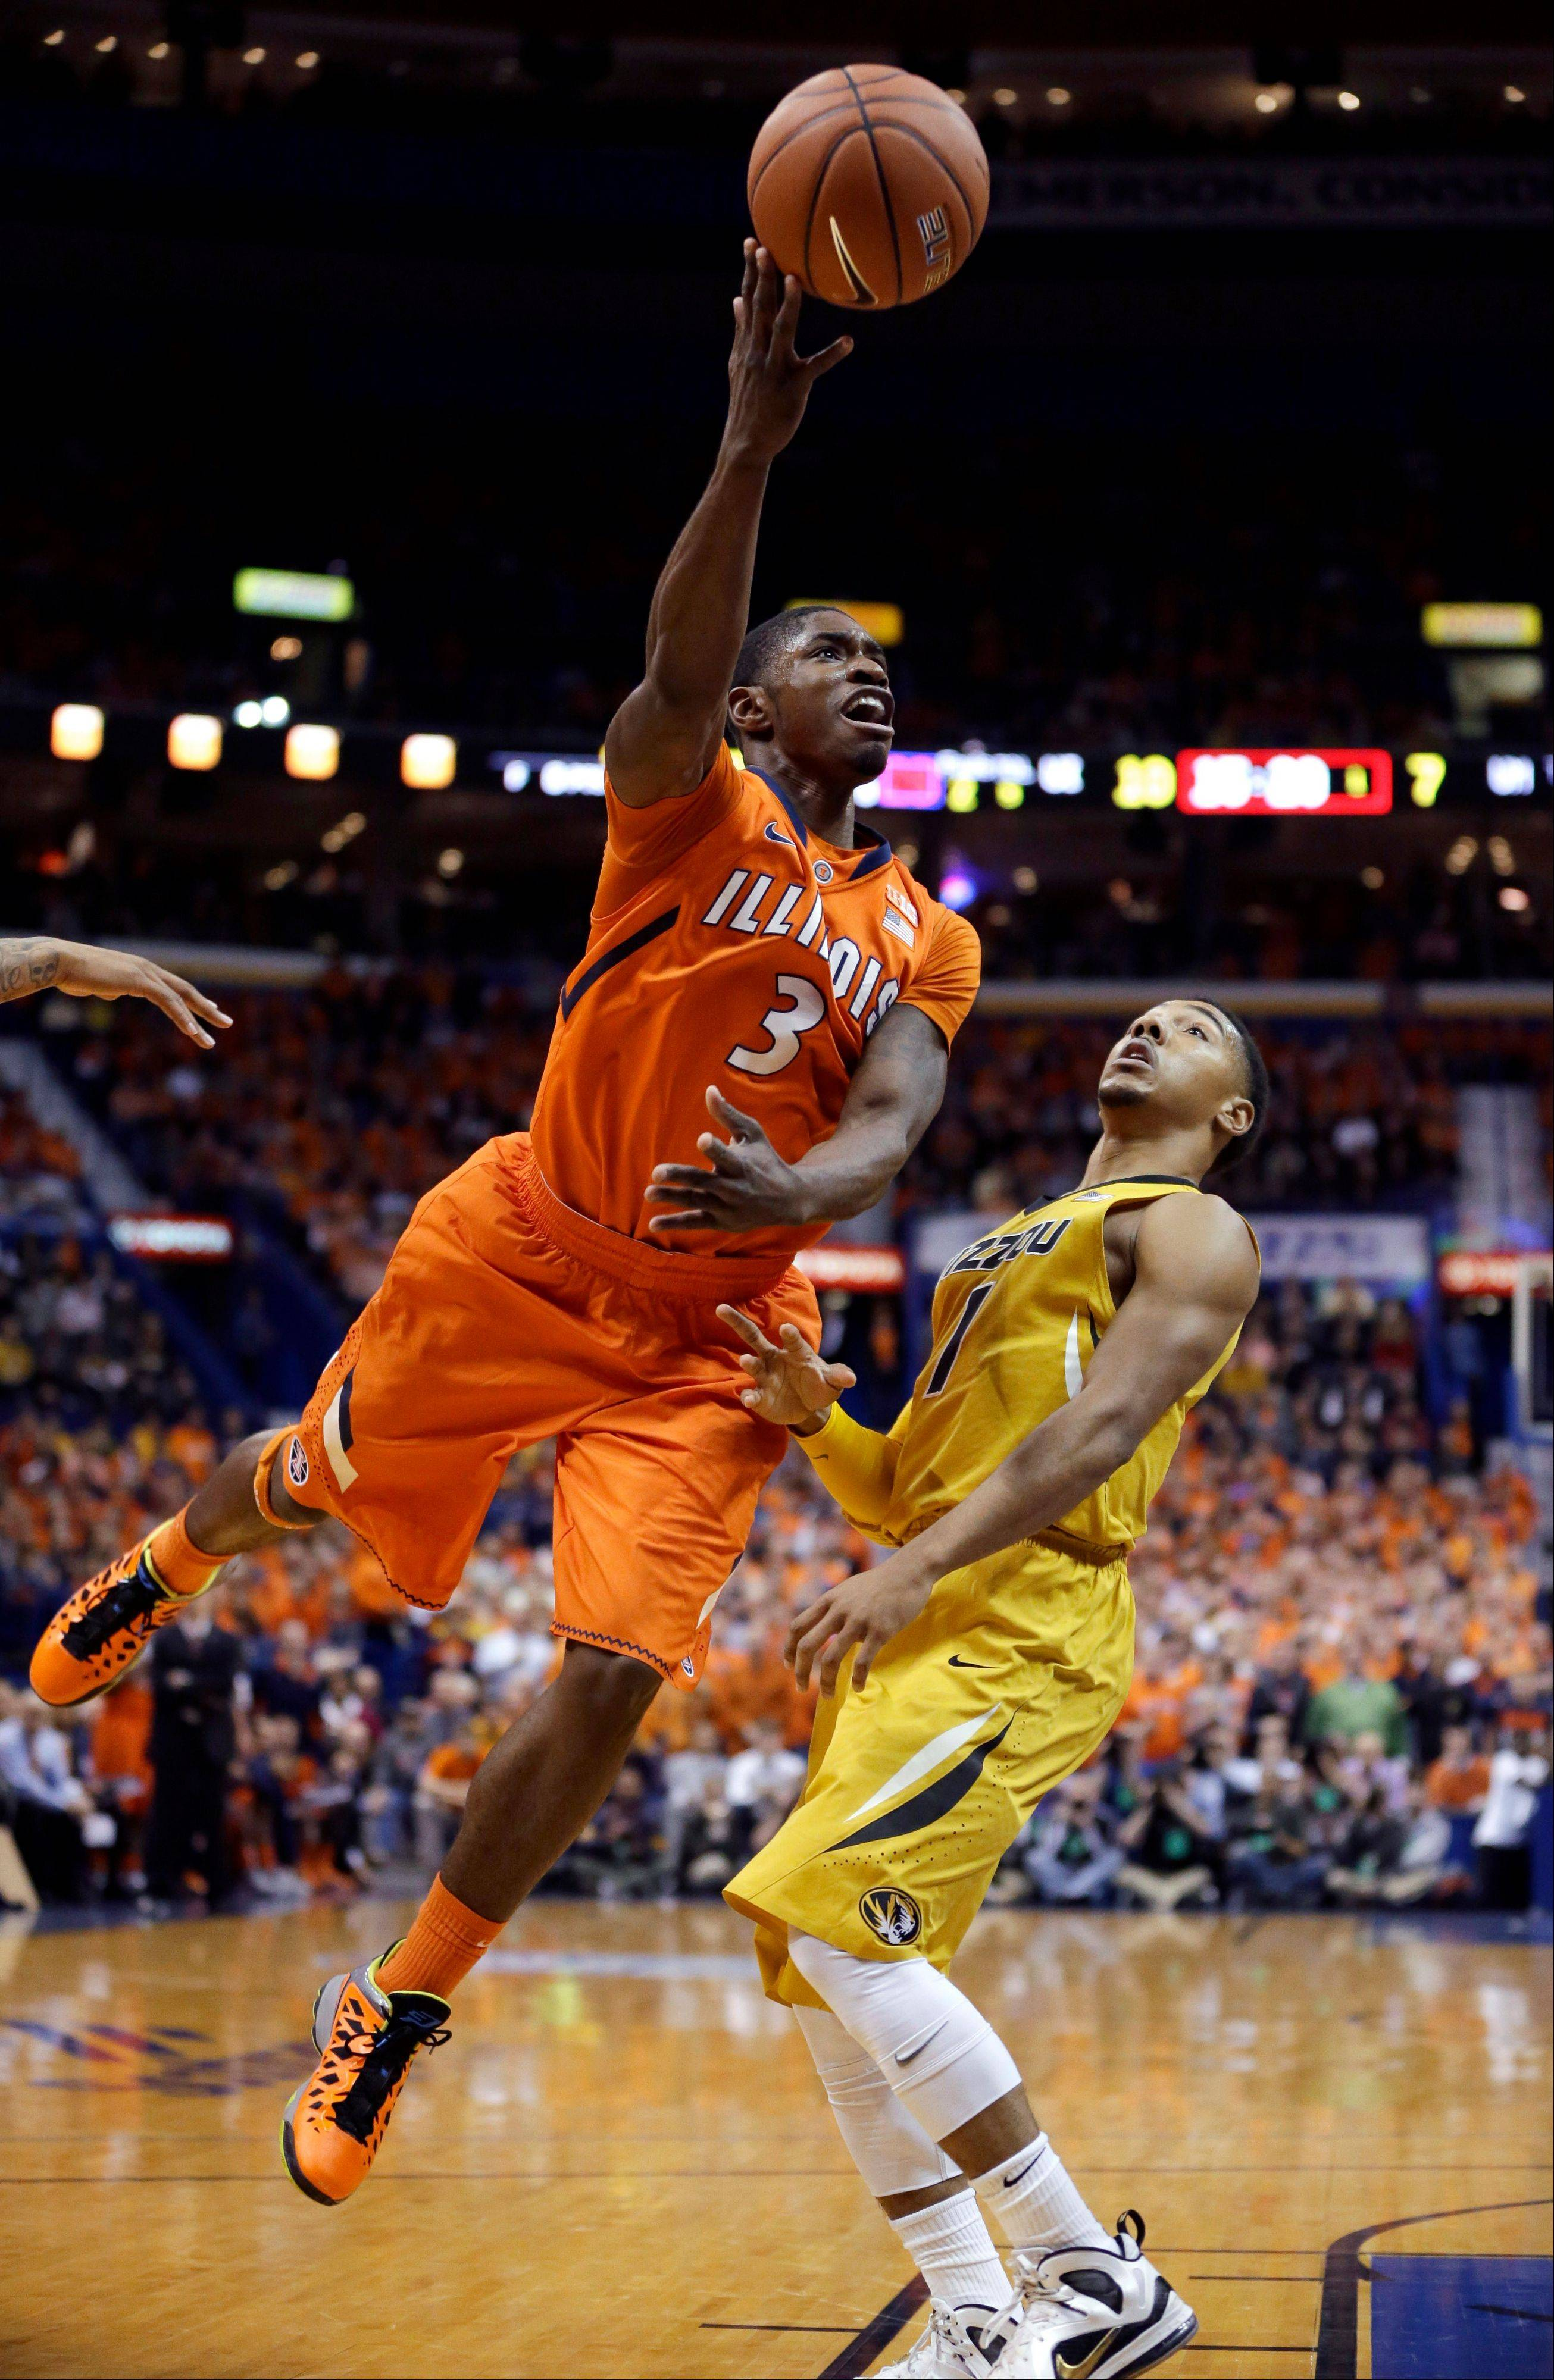 Illinois' Brandon Paul, left, heads to the basket as Missouri's Phil Pressey defends Saturday during the first half in St. Louis.